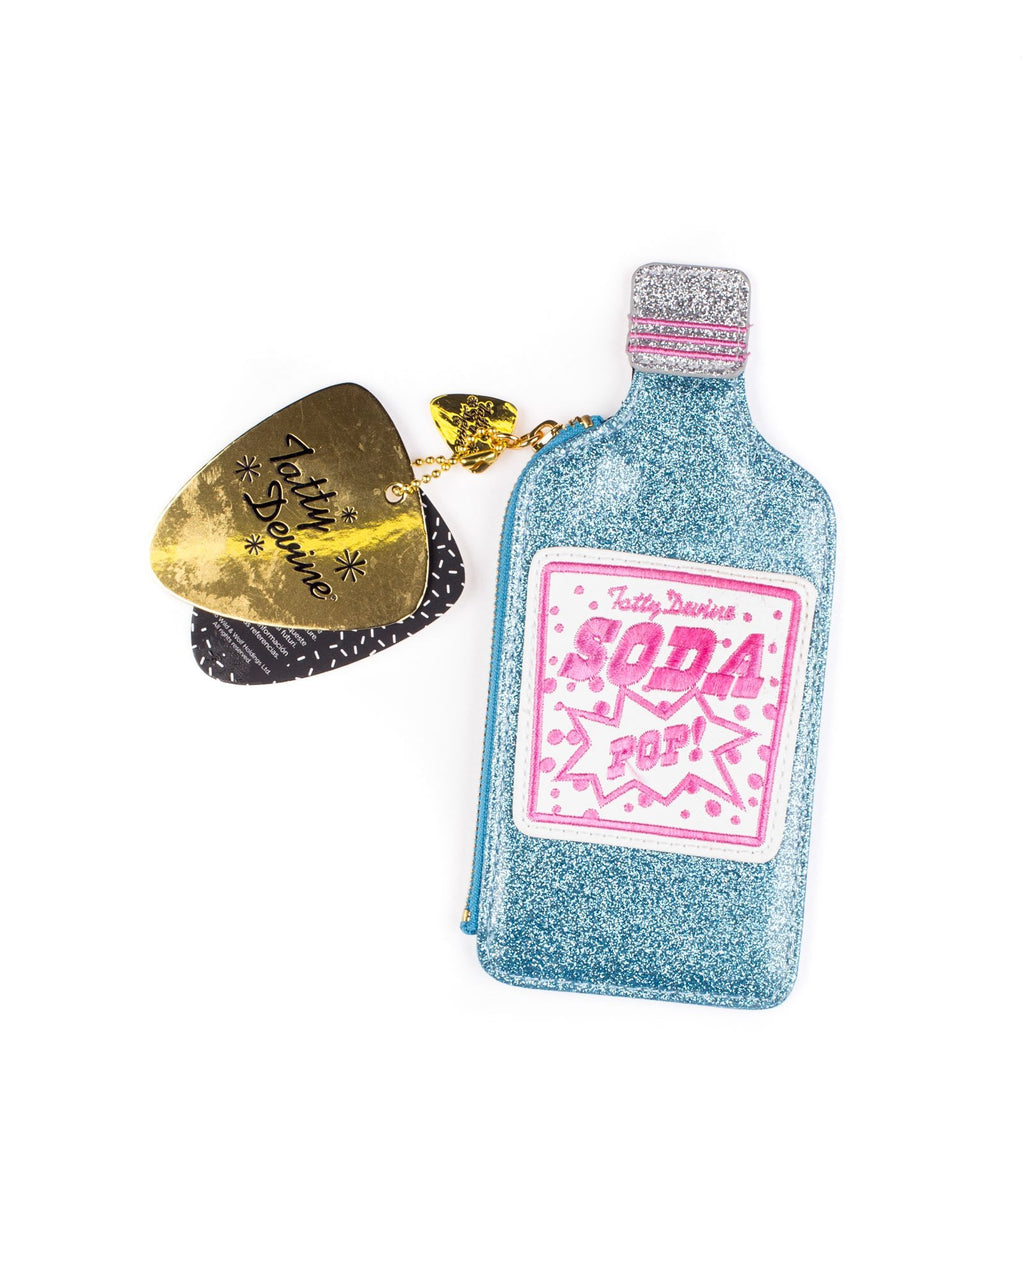 Tatty Devine - Soda Pop Coin Purse